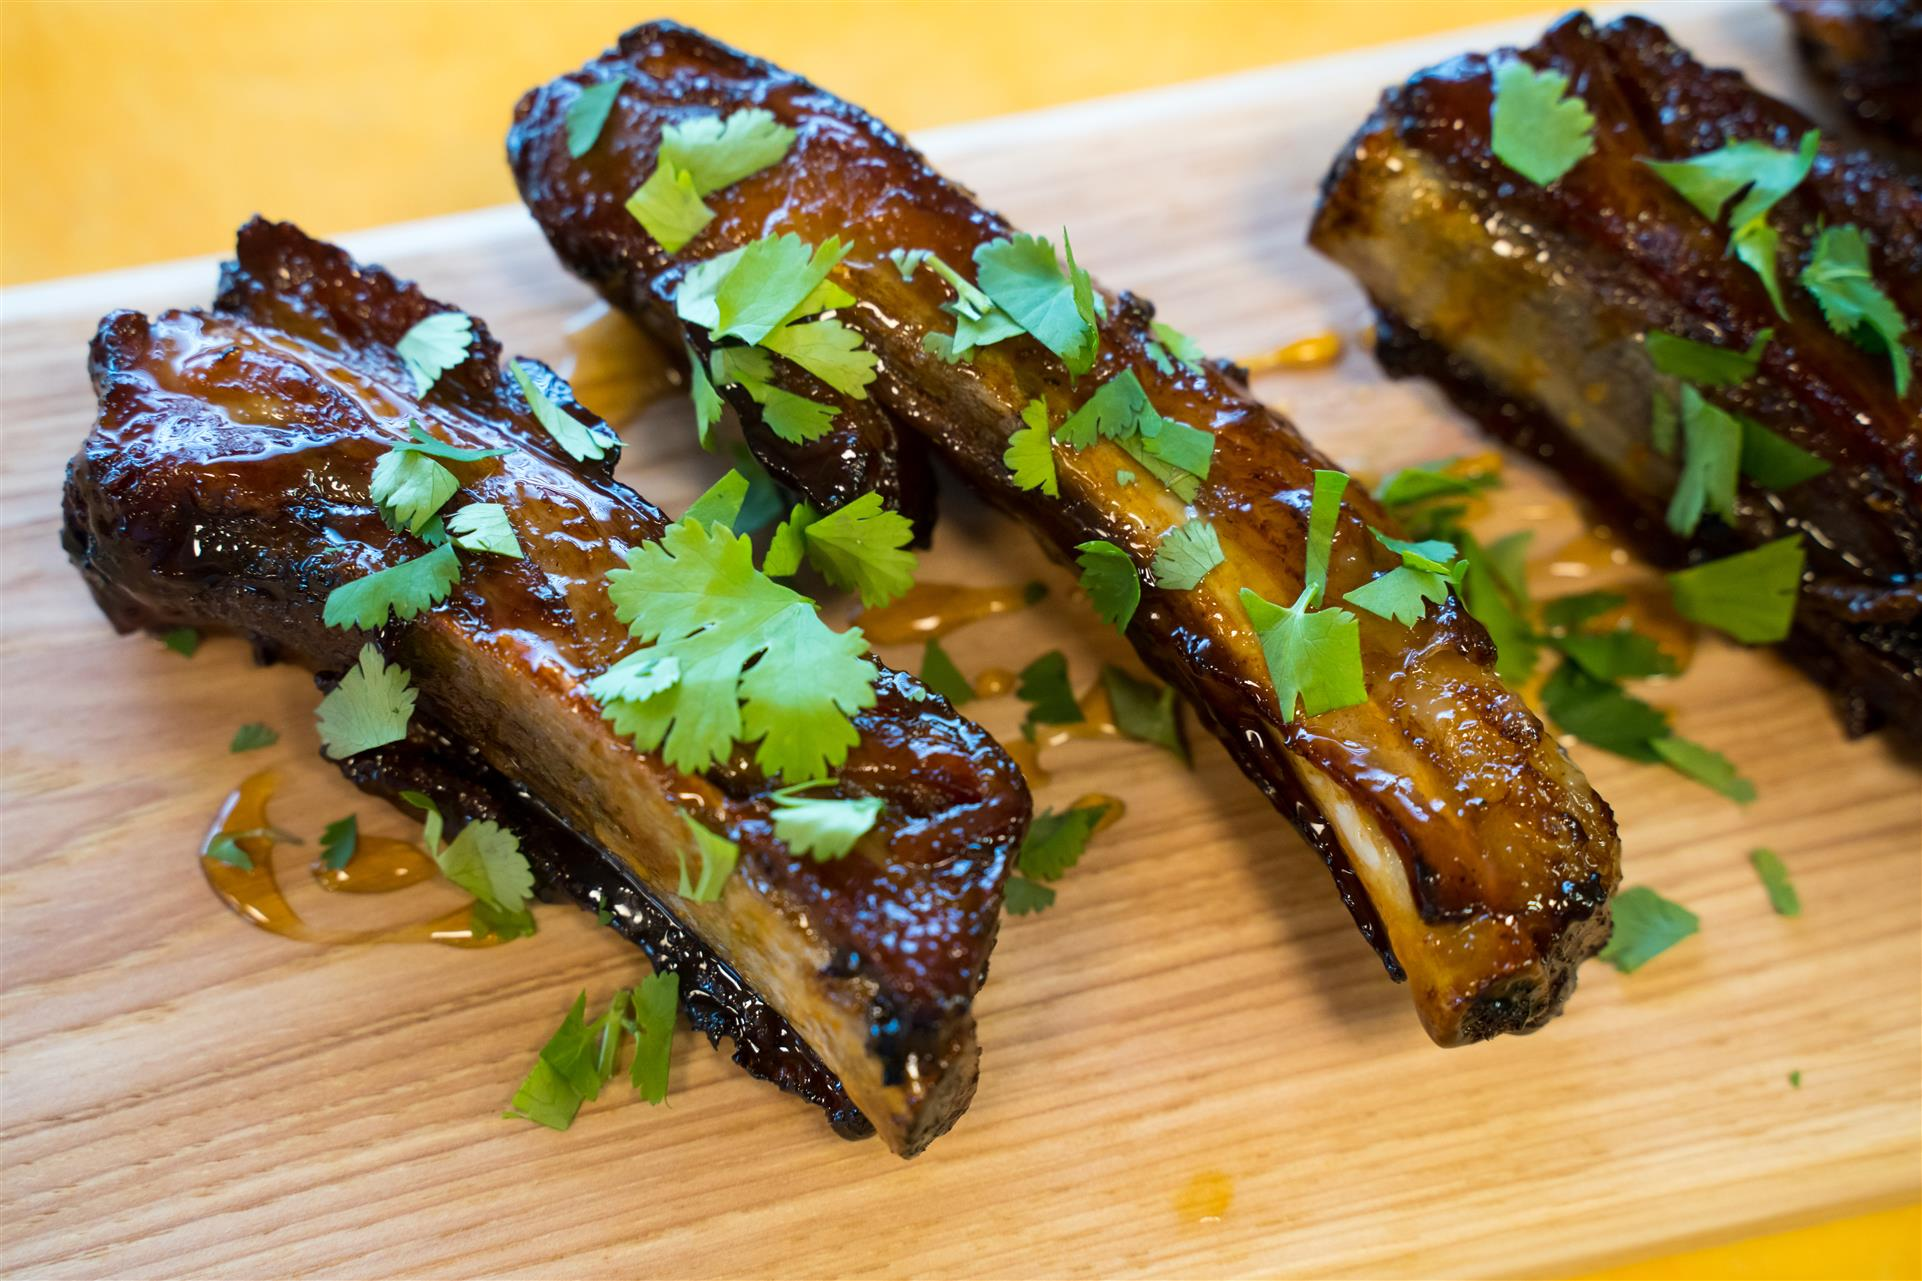 assorment of Ribs topped with garnish